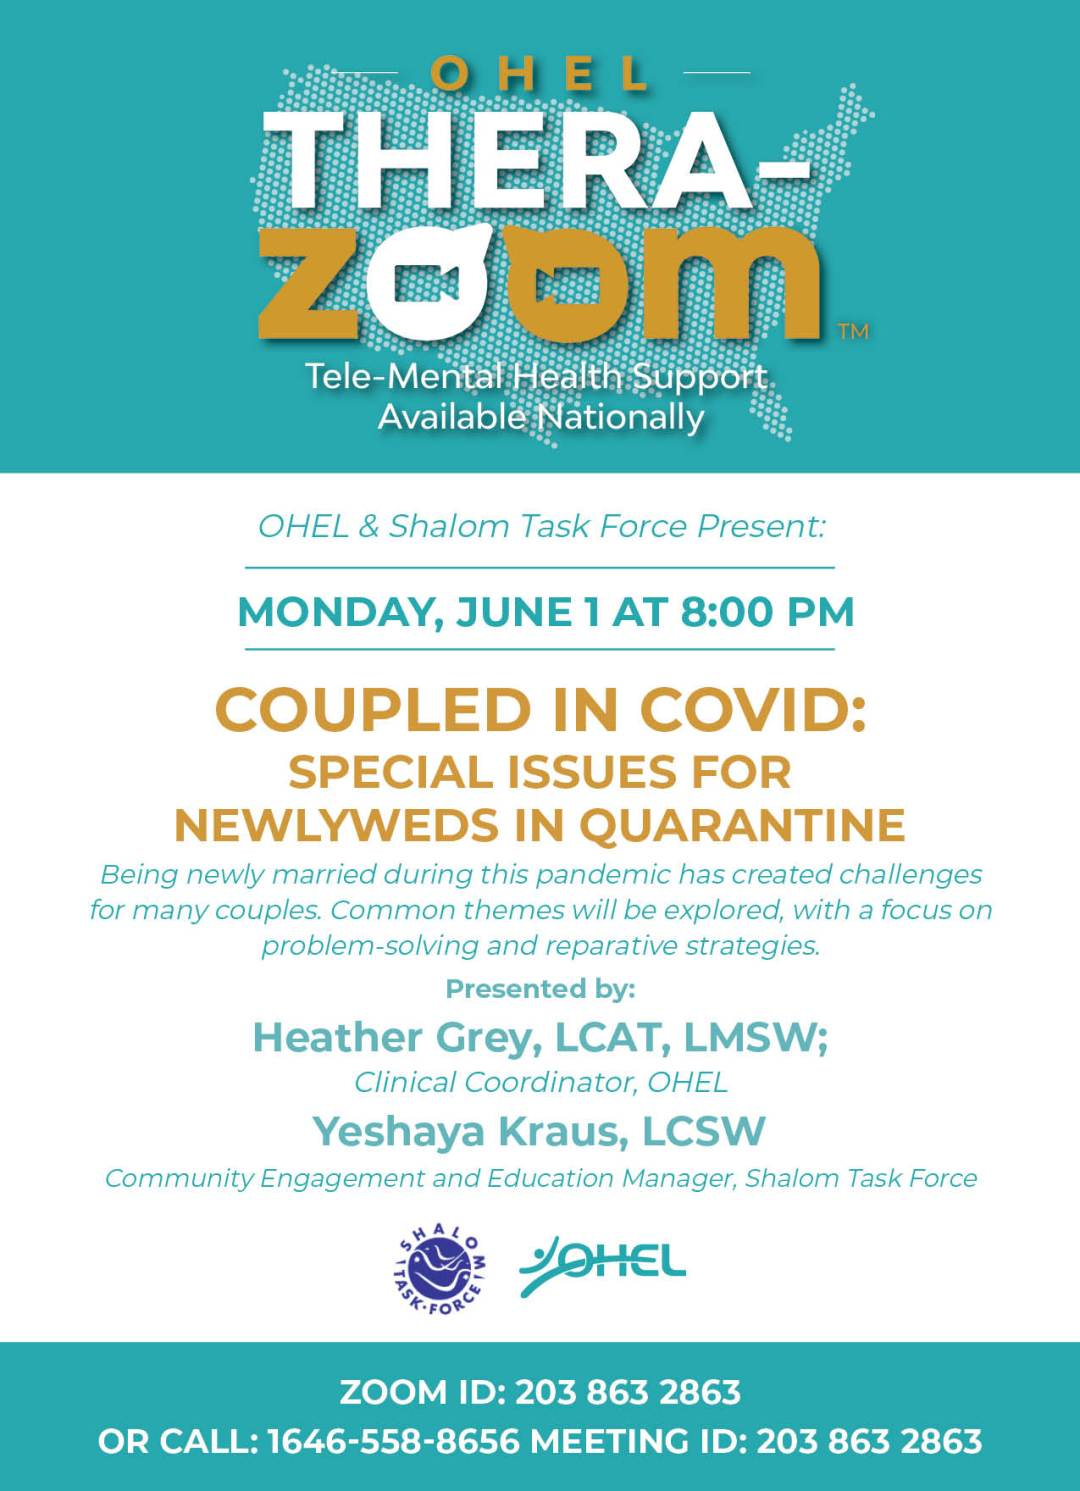 OHEL TZ Coupled in Covid - June 1[2]